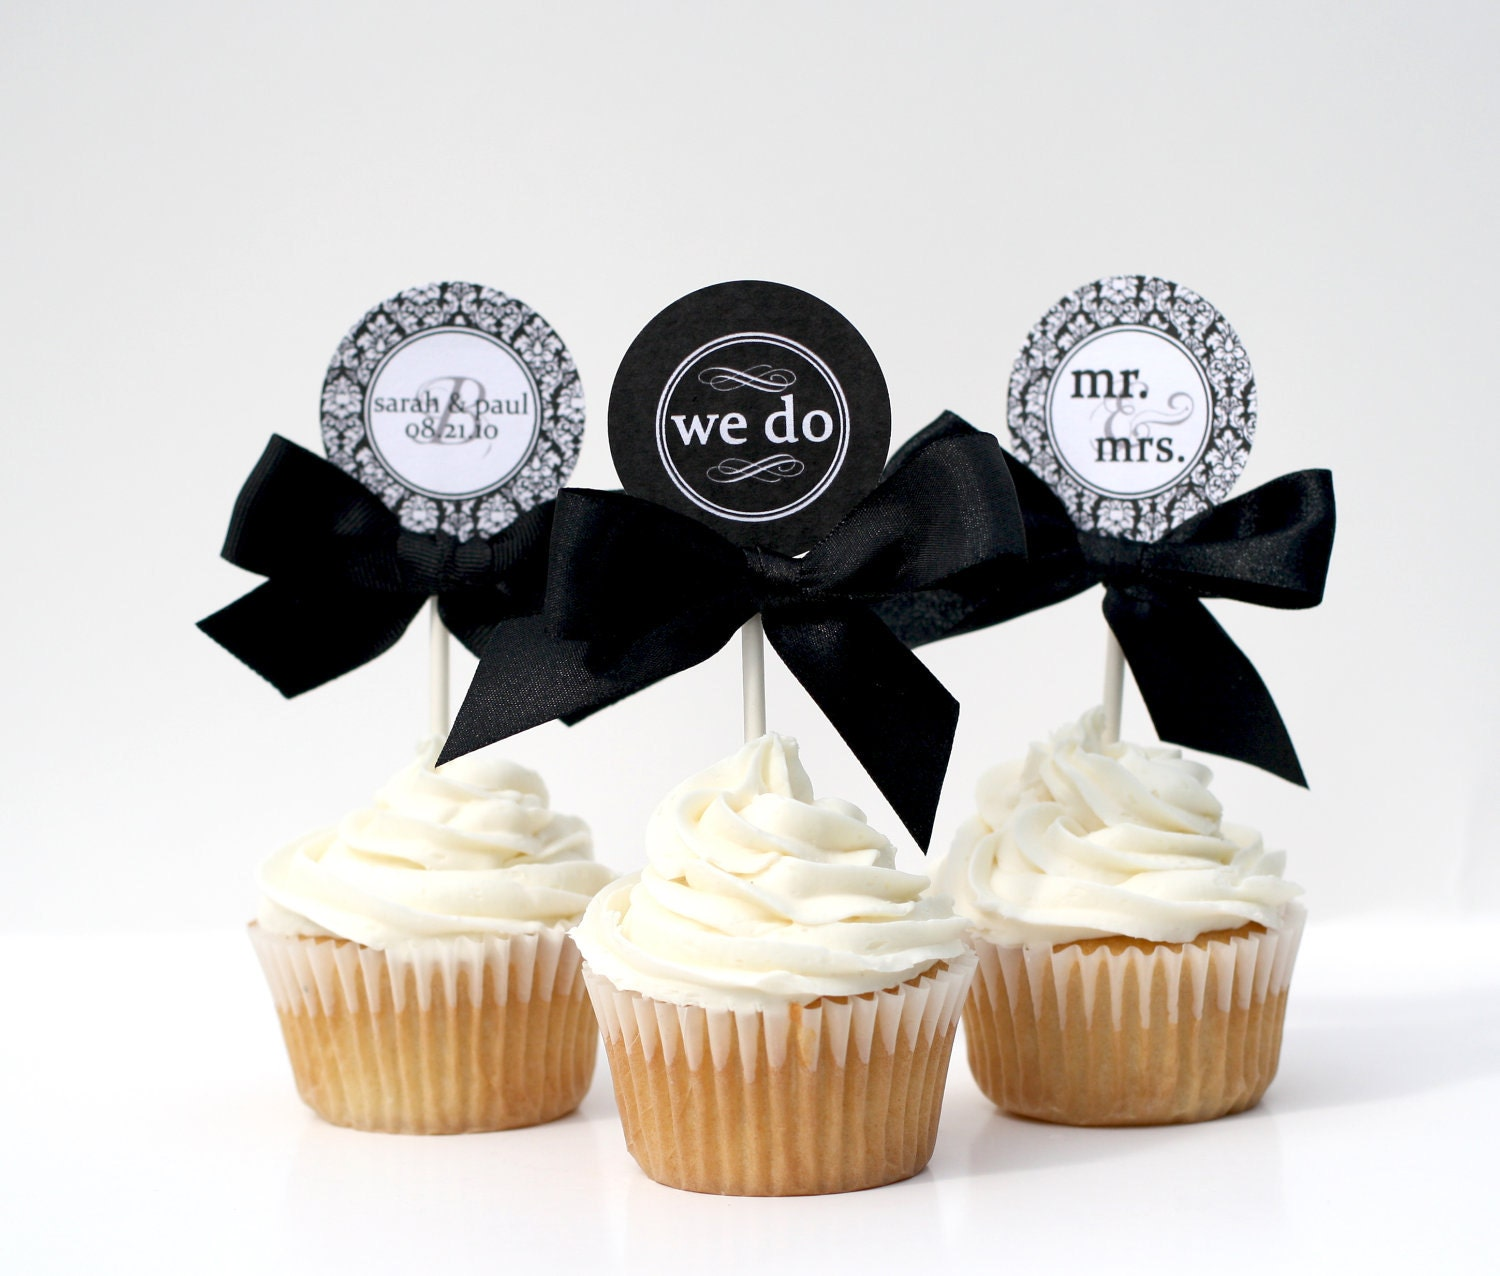 Cupcake Ideas For Wedding: Wedding / Bridal Shower Cupcake Toppers WE By